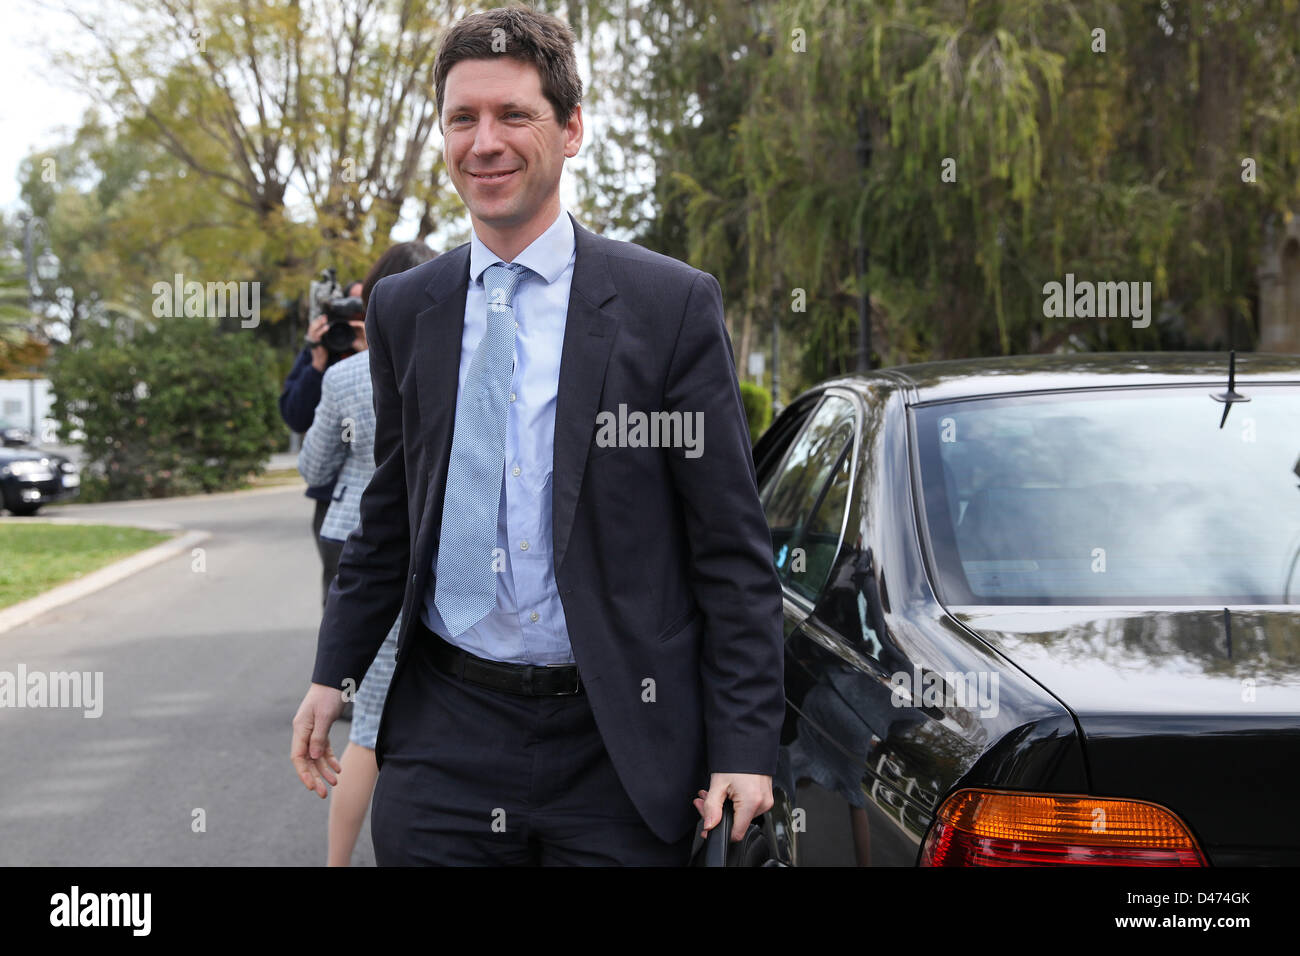 Nicosia, Cyprus. 7th March 2013. Maarten Verwey from European Commision arriving at the presidential palace for - Stock Image